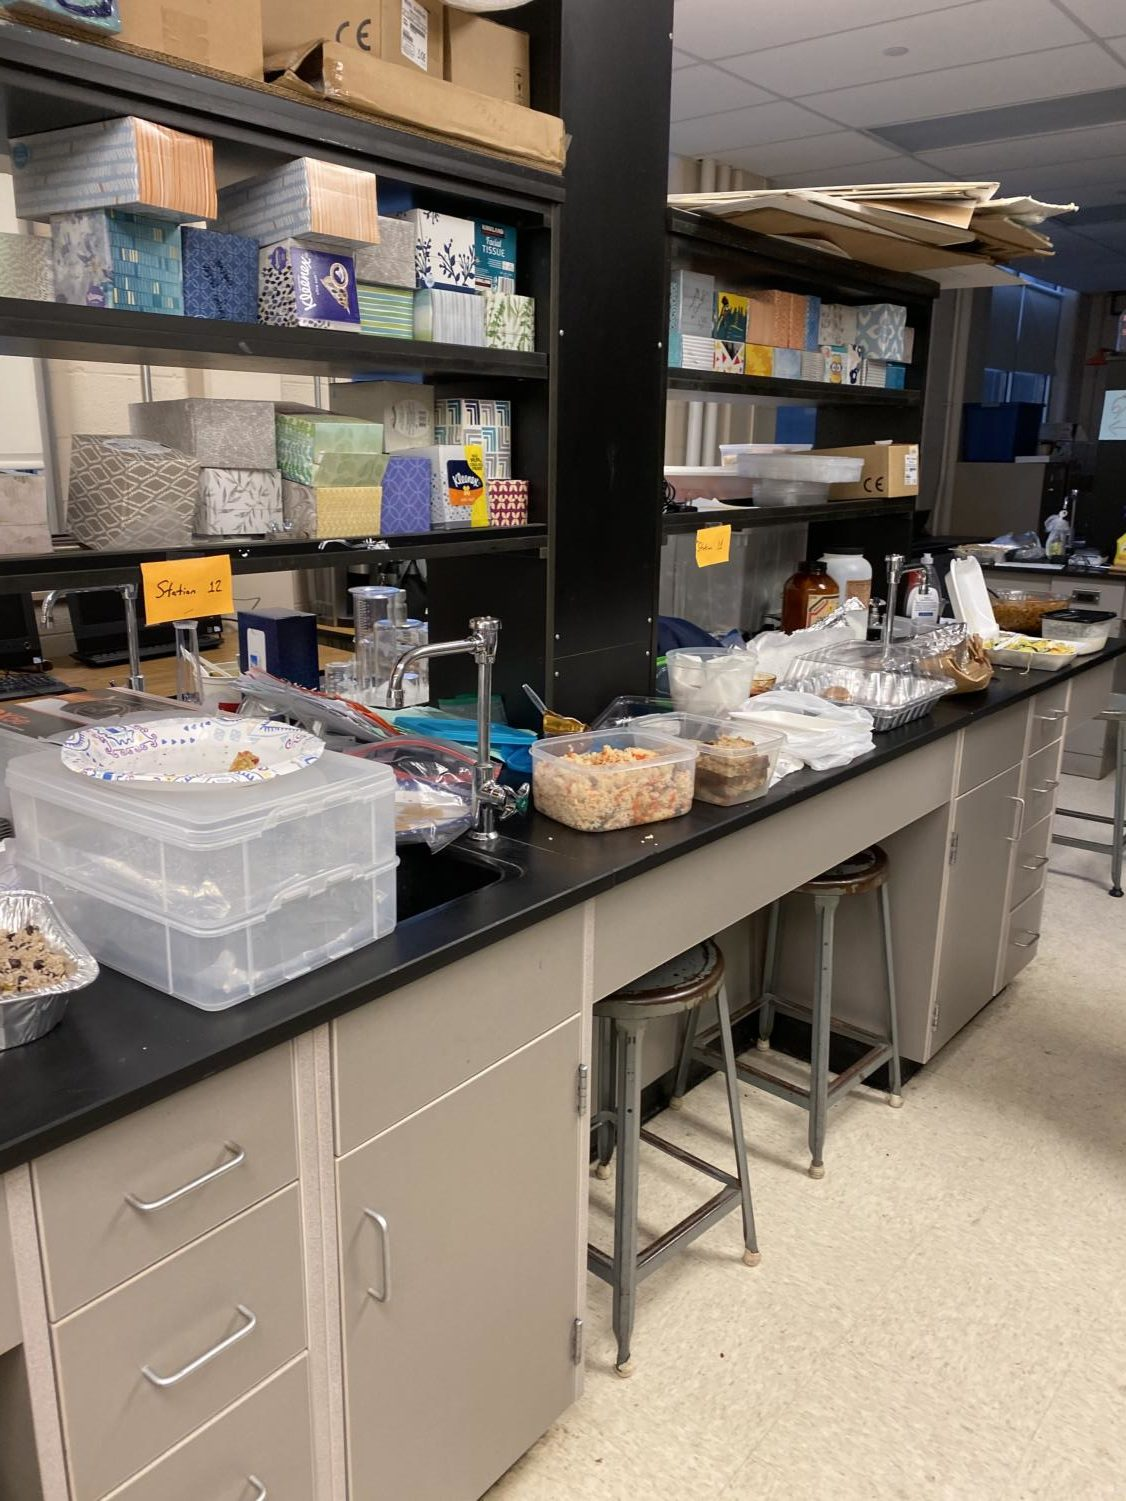 A wide array of food sits on the counter of the AP Chemistry stations during a Chemistry in the Kitchen on Nov. 21, 2019. The counters are topped with complex chemical compounds like any lab, although the products of the reactions are edible and delicious.